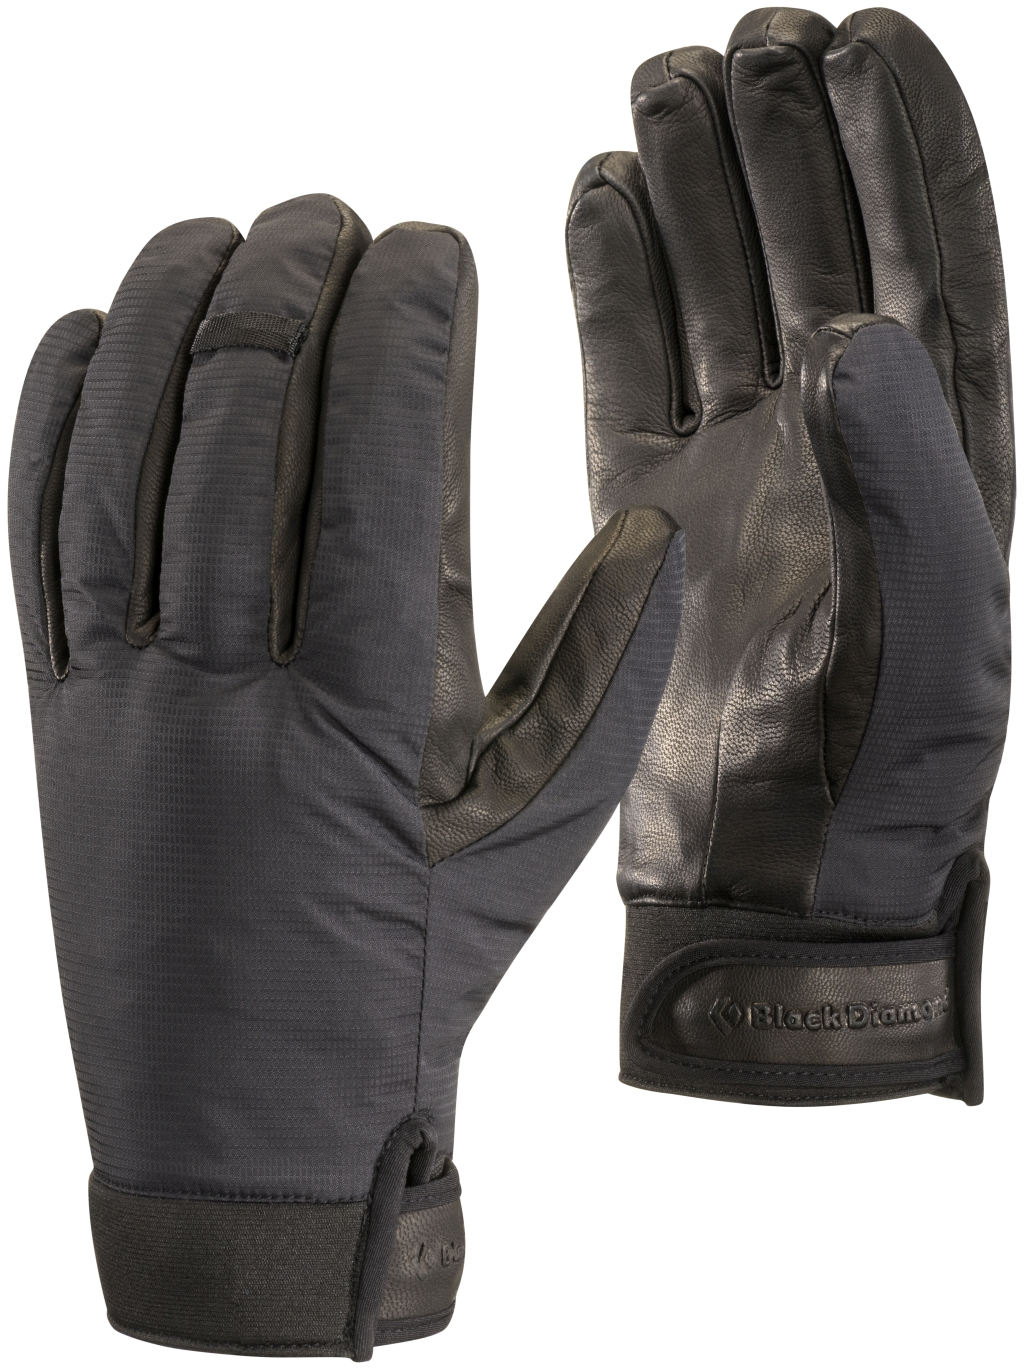 Black Diamond Heavyweight Waterproof Gloves Black-30